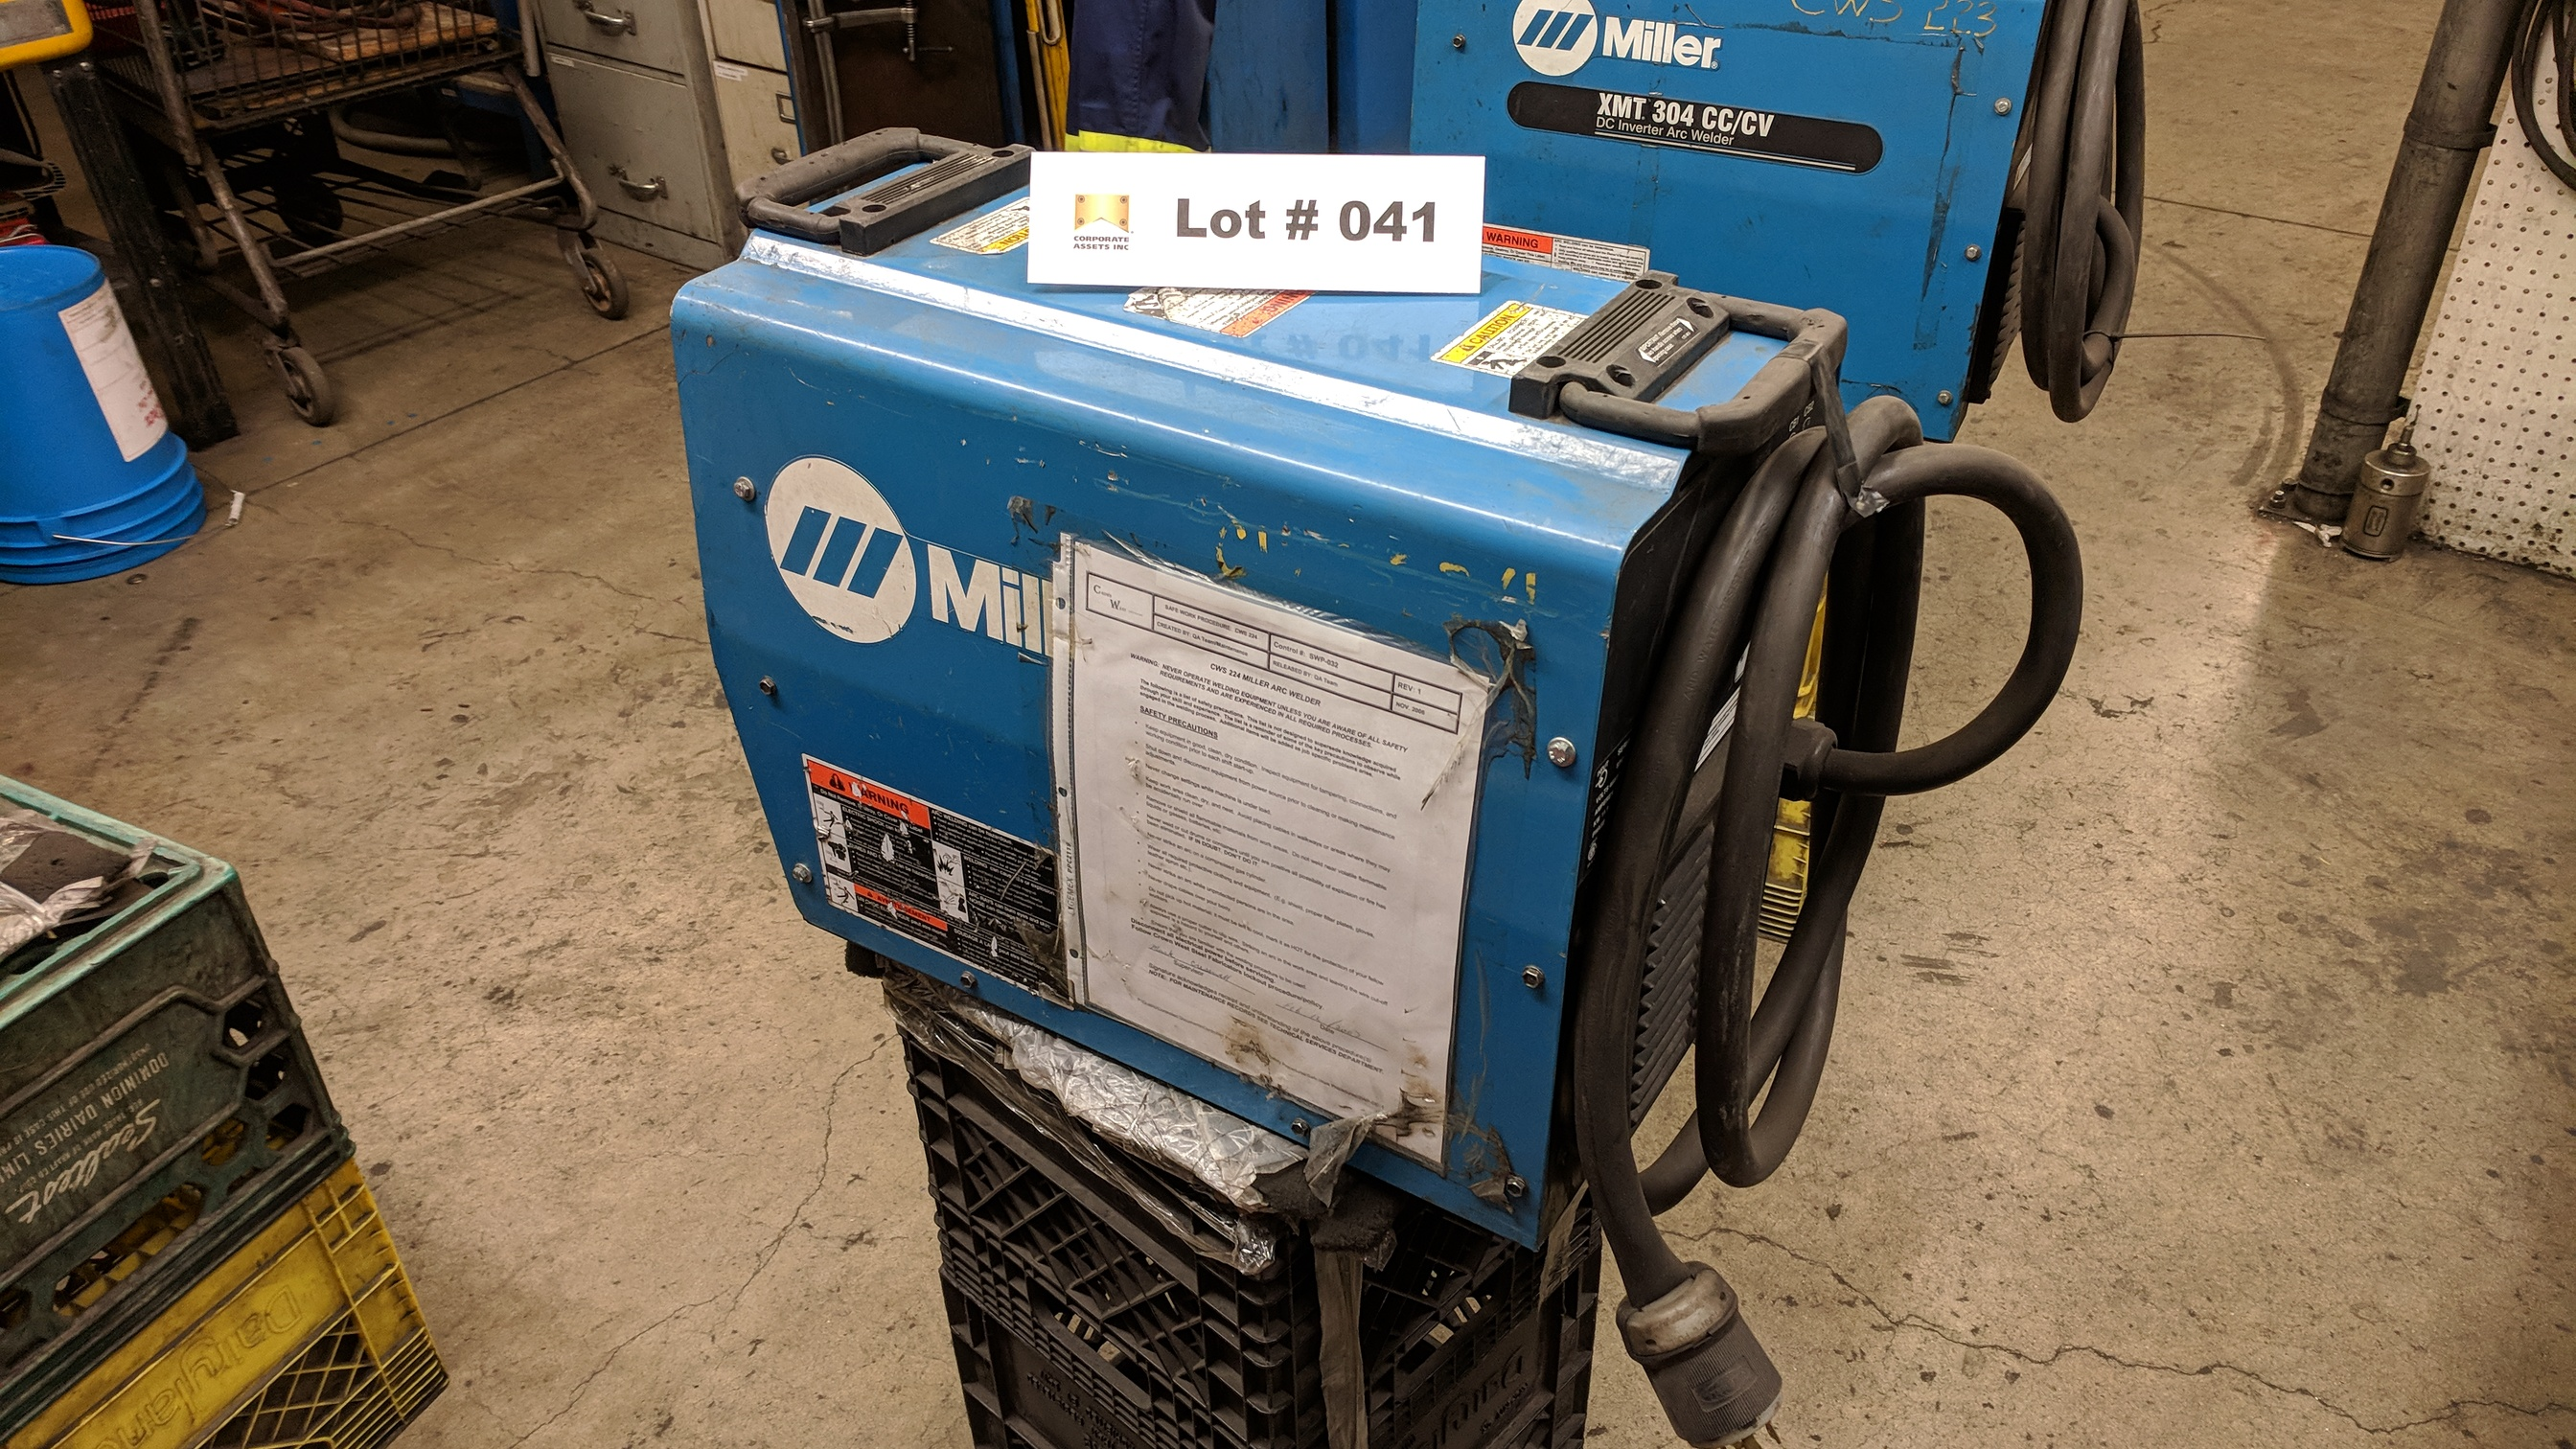 MILLER XMT 304 CC/CV DC INVERTER ARC WELDER WITH CABLES AND GUN, S/N N/A - Image 2 of 2